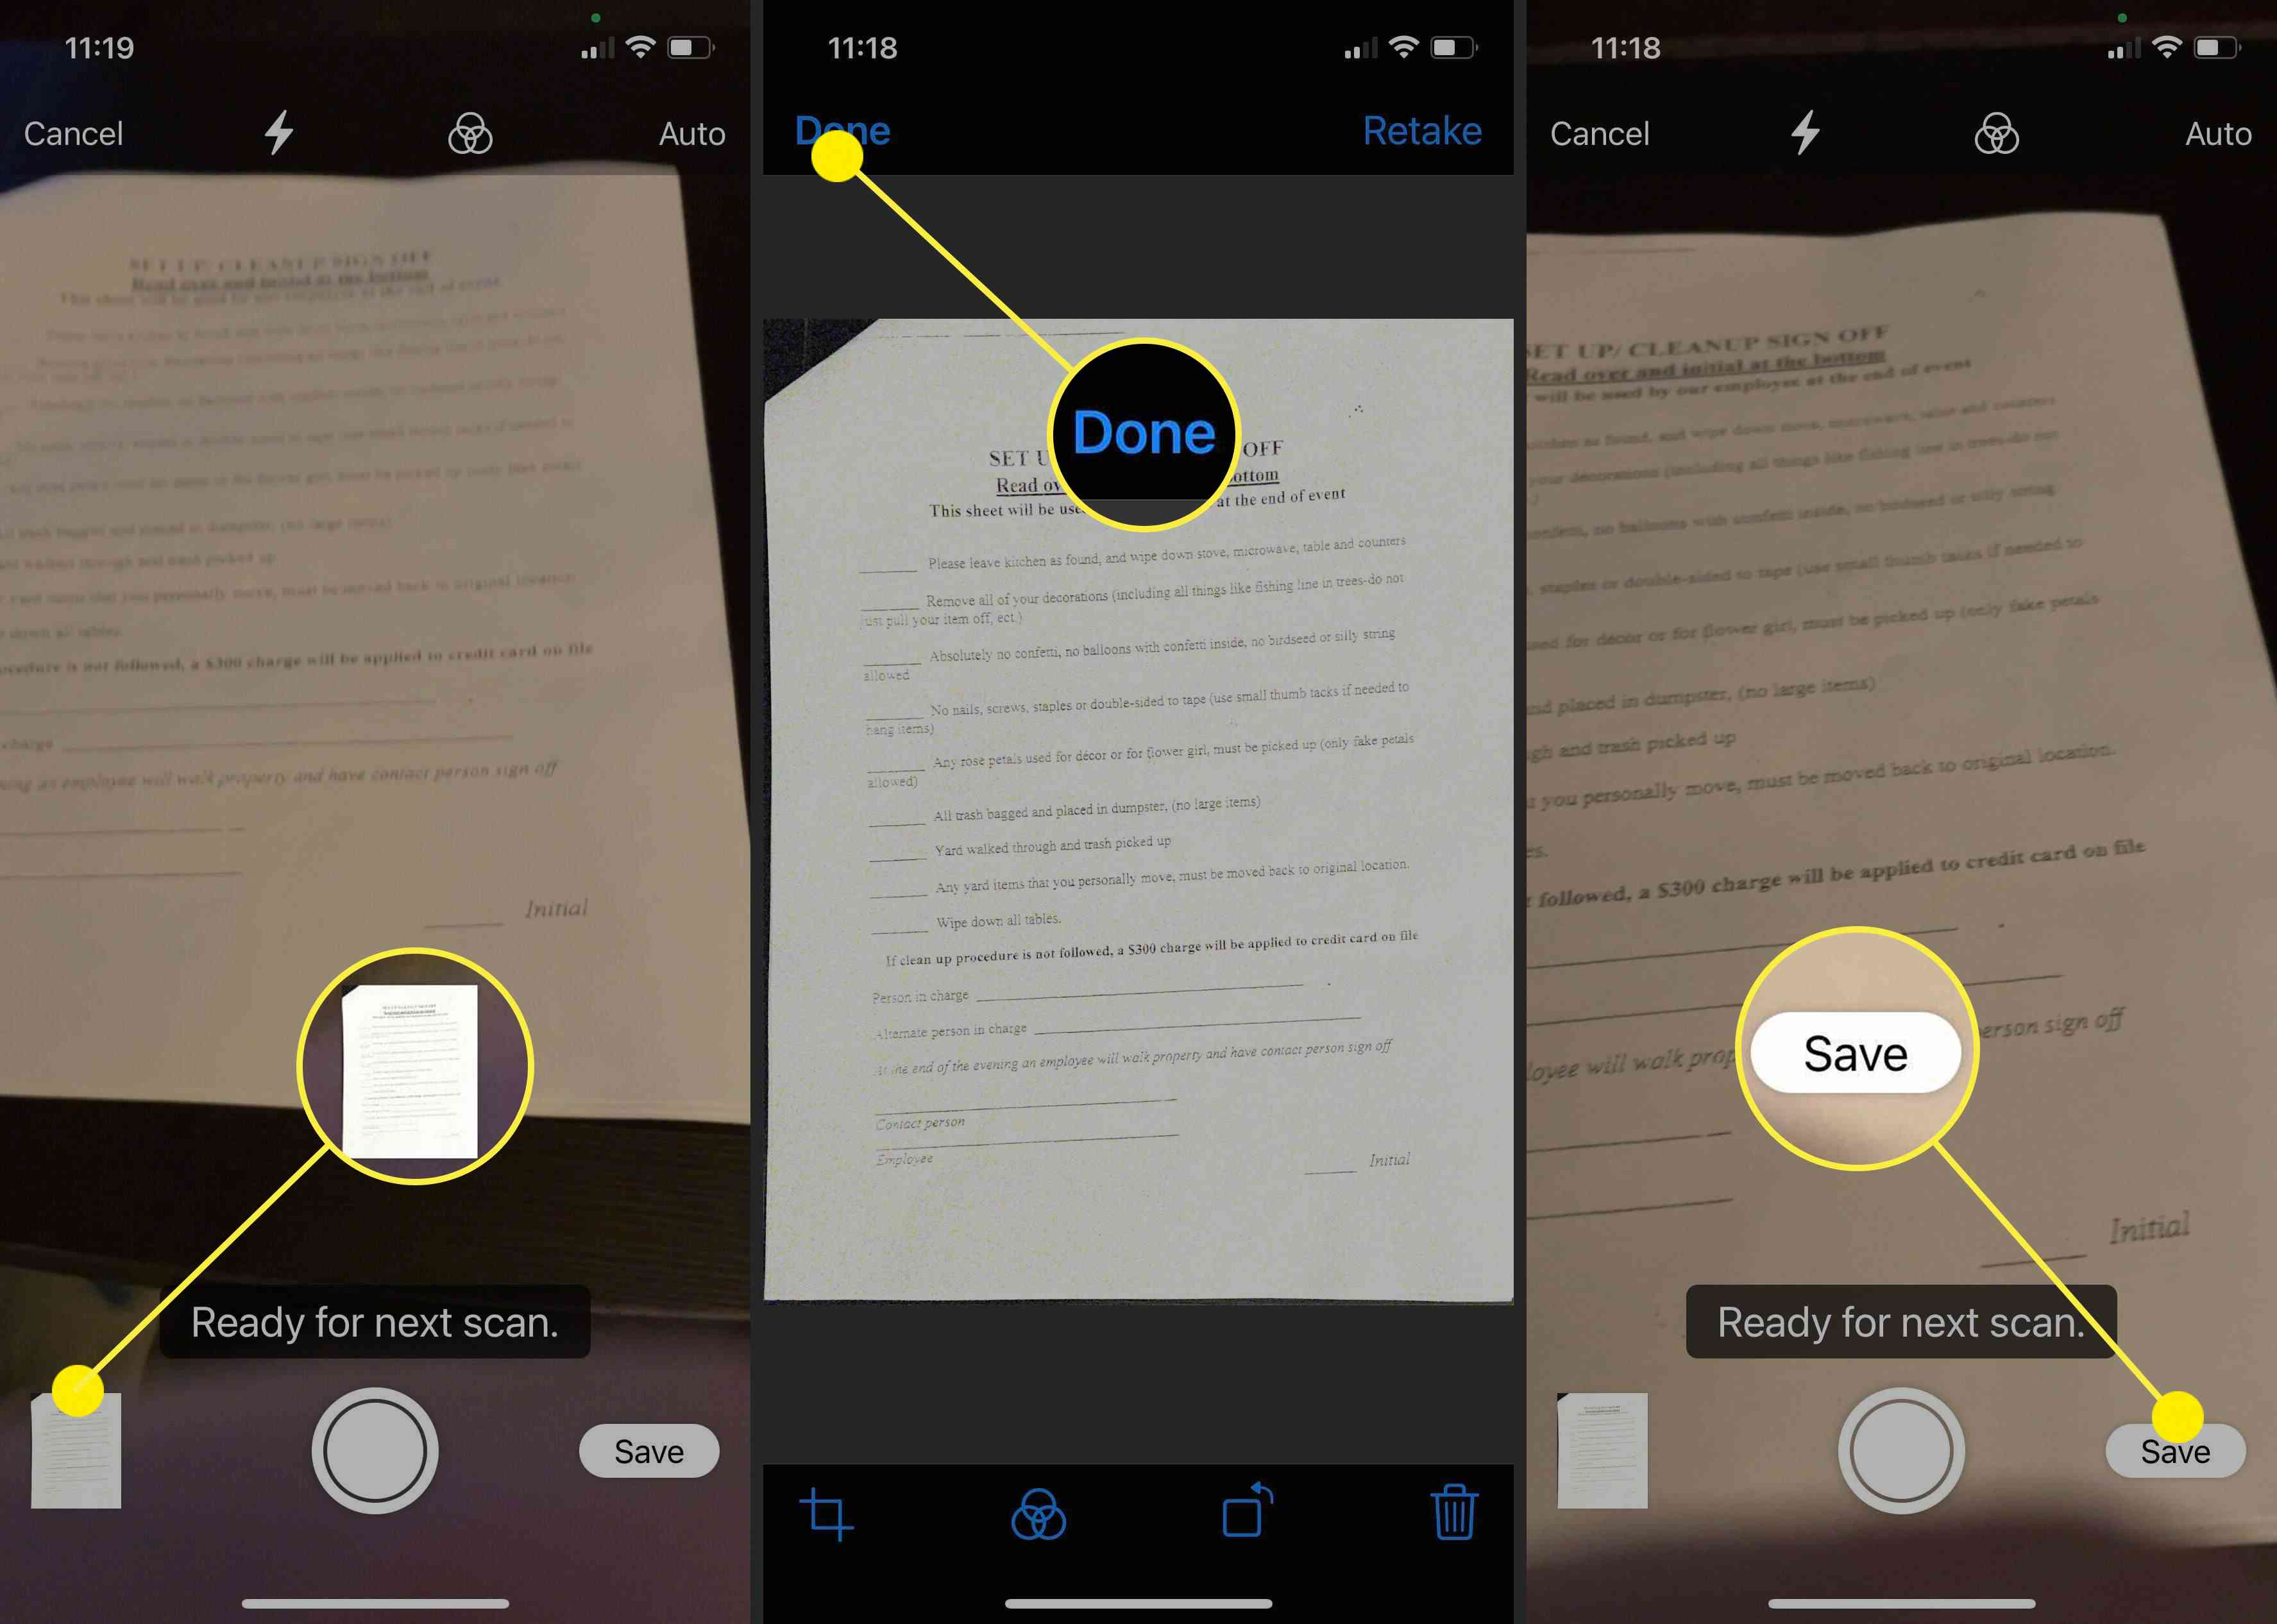 Screenshots showing how to manage edit and send a scan from an iPhone to a Mac.